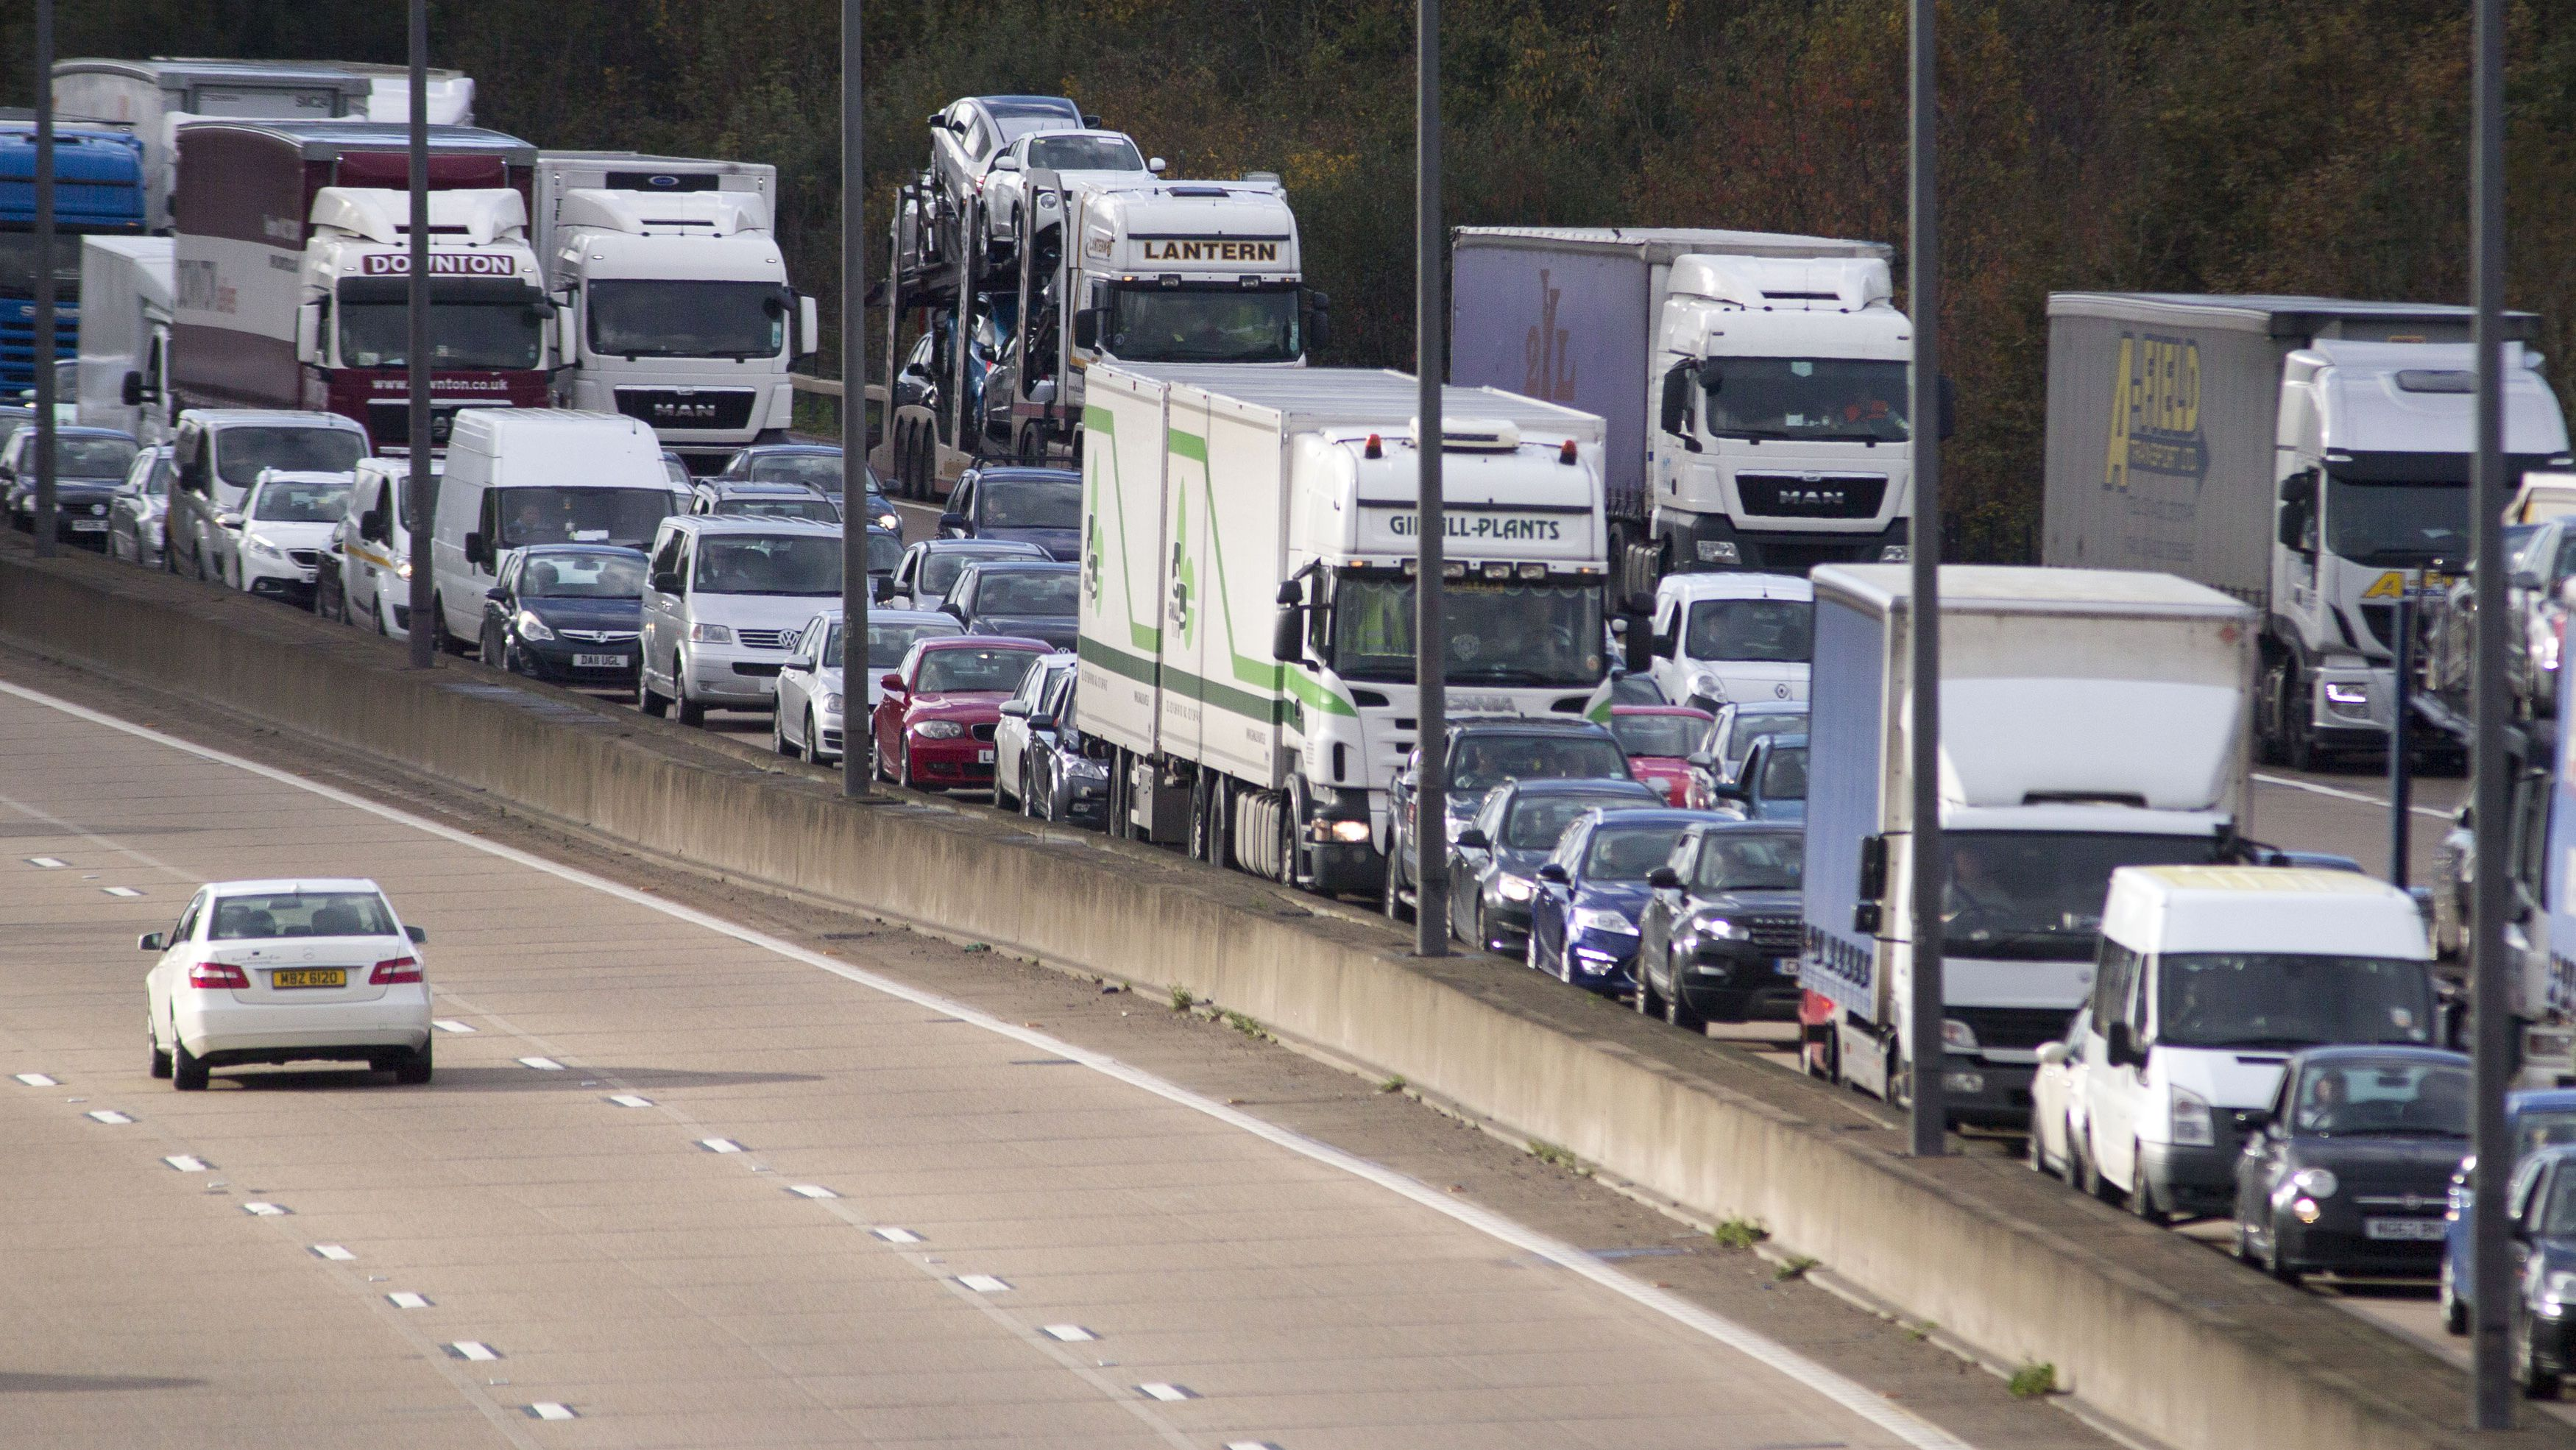 A car drives clockwise along the M25, as anti-clockwise traffic is at a standstill after heavy rain and road works caused a 20 mile jam on London's orbital motorway, November 14, 2014.   REUTERS/Peter Nicholls  (BRITAIN - Tags: SOCIETY TRANSPORT ENVIRONMENT TPX IMAGES OF THE DAY) - RTR4E5Y3